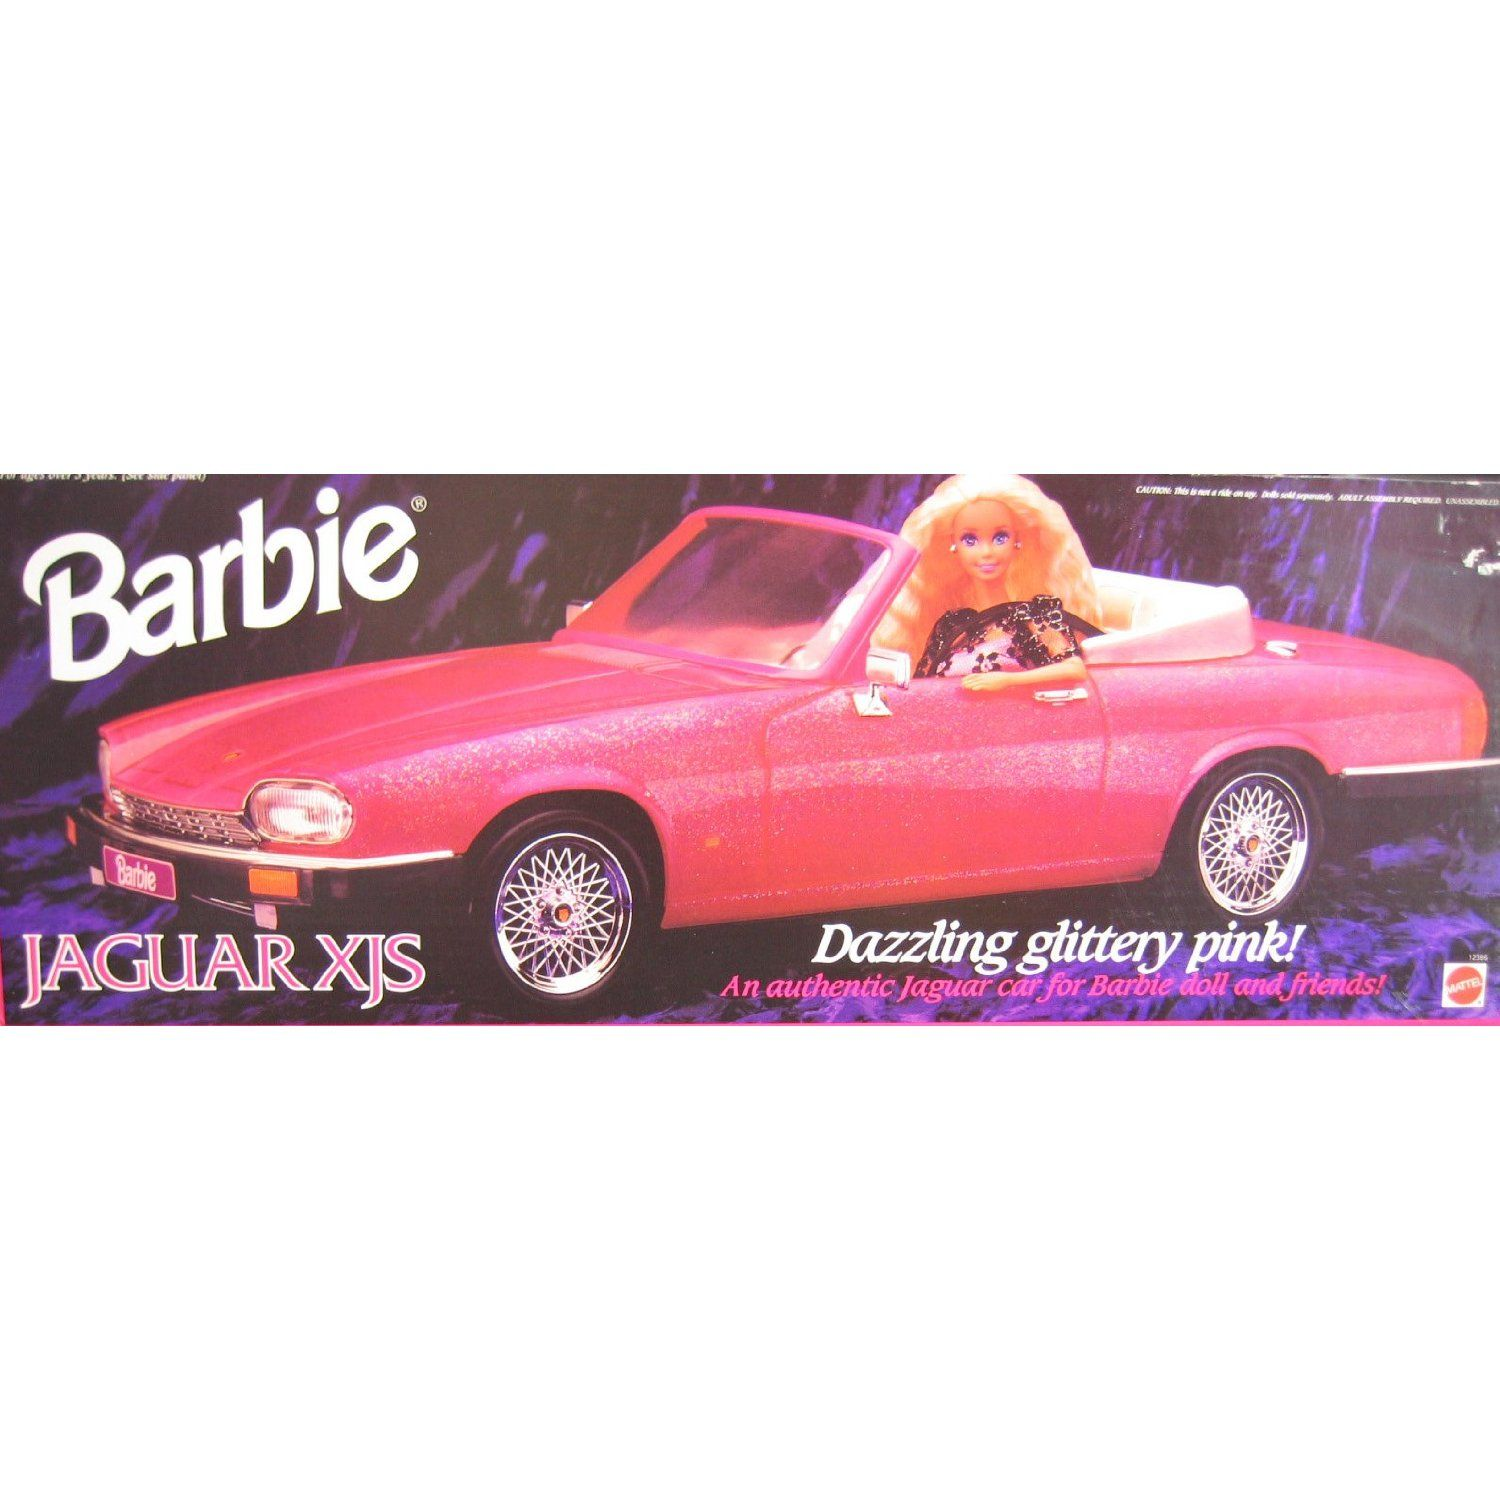 barbie jaguar xjs convertible vehicle dazzling glittery pink car 1994 items i would love. Black Bedroom Furniture Sets. Home Design Ideas